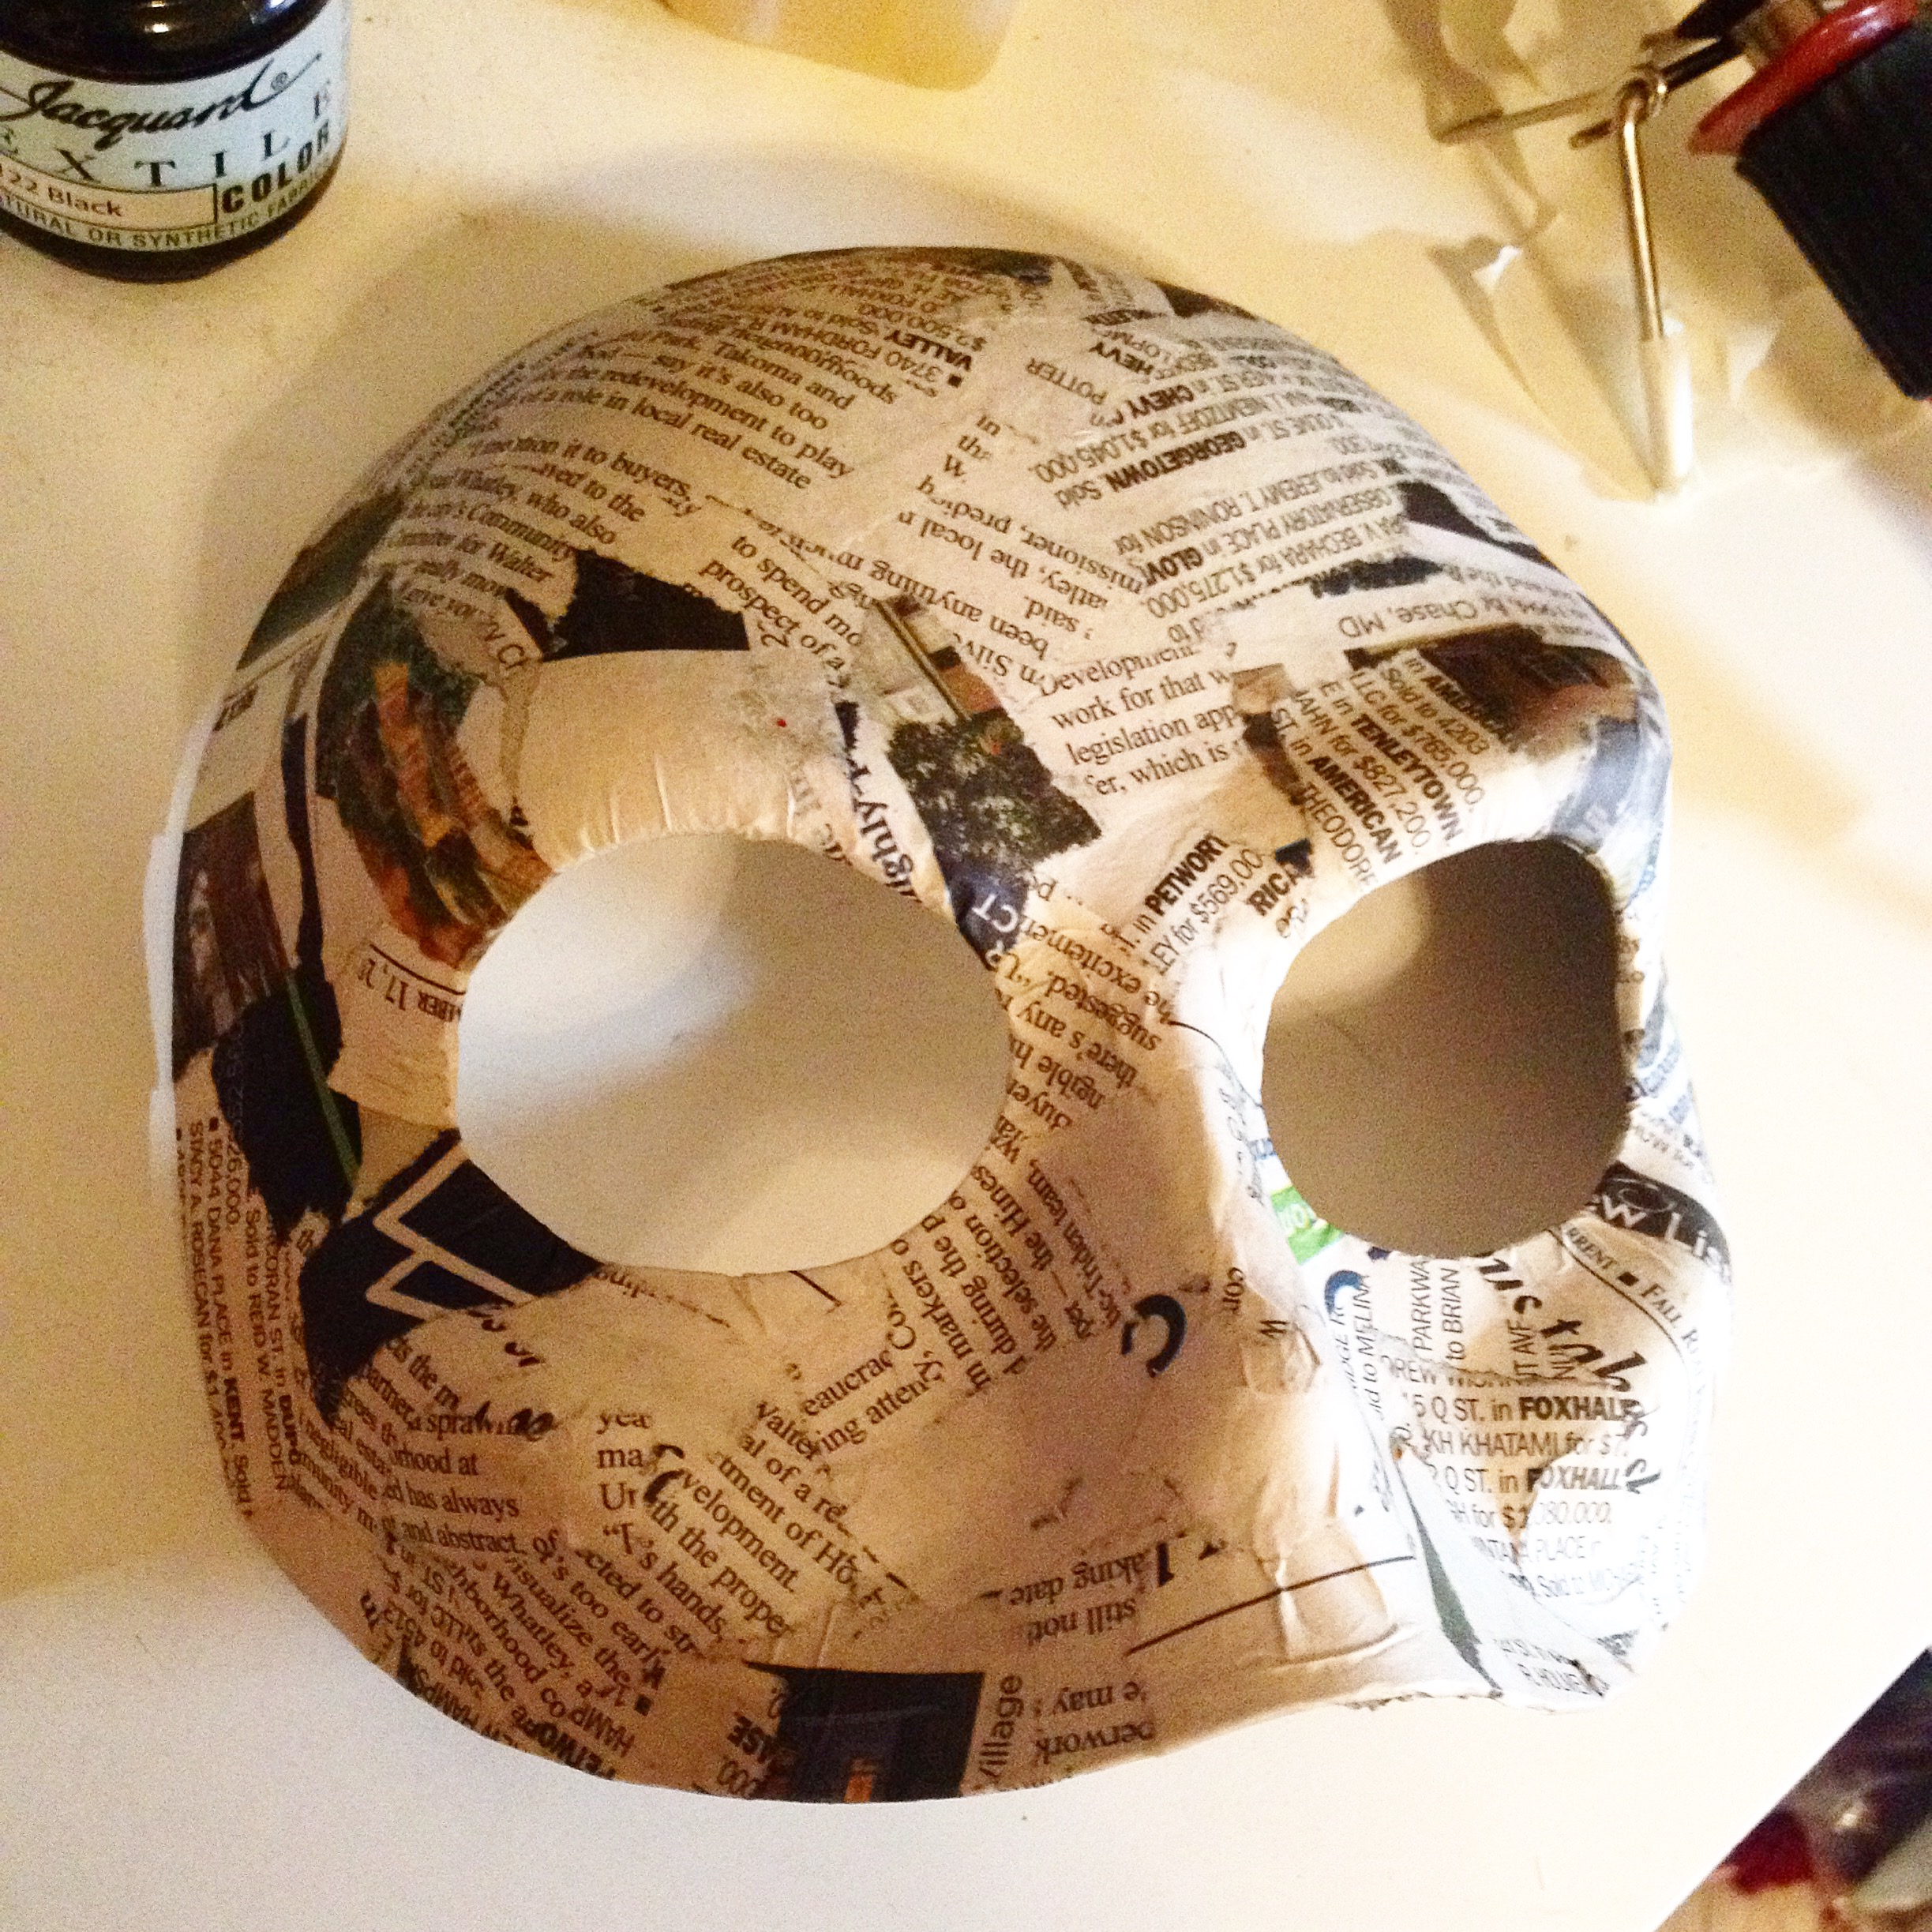 Cut down, reshaped and paper-mached base mask.